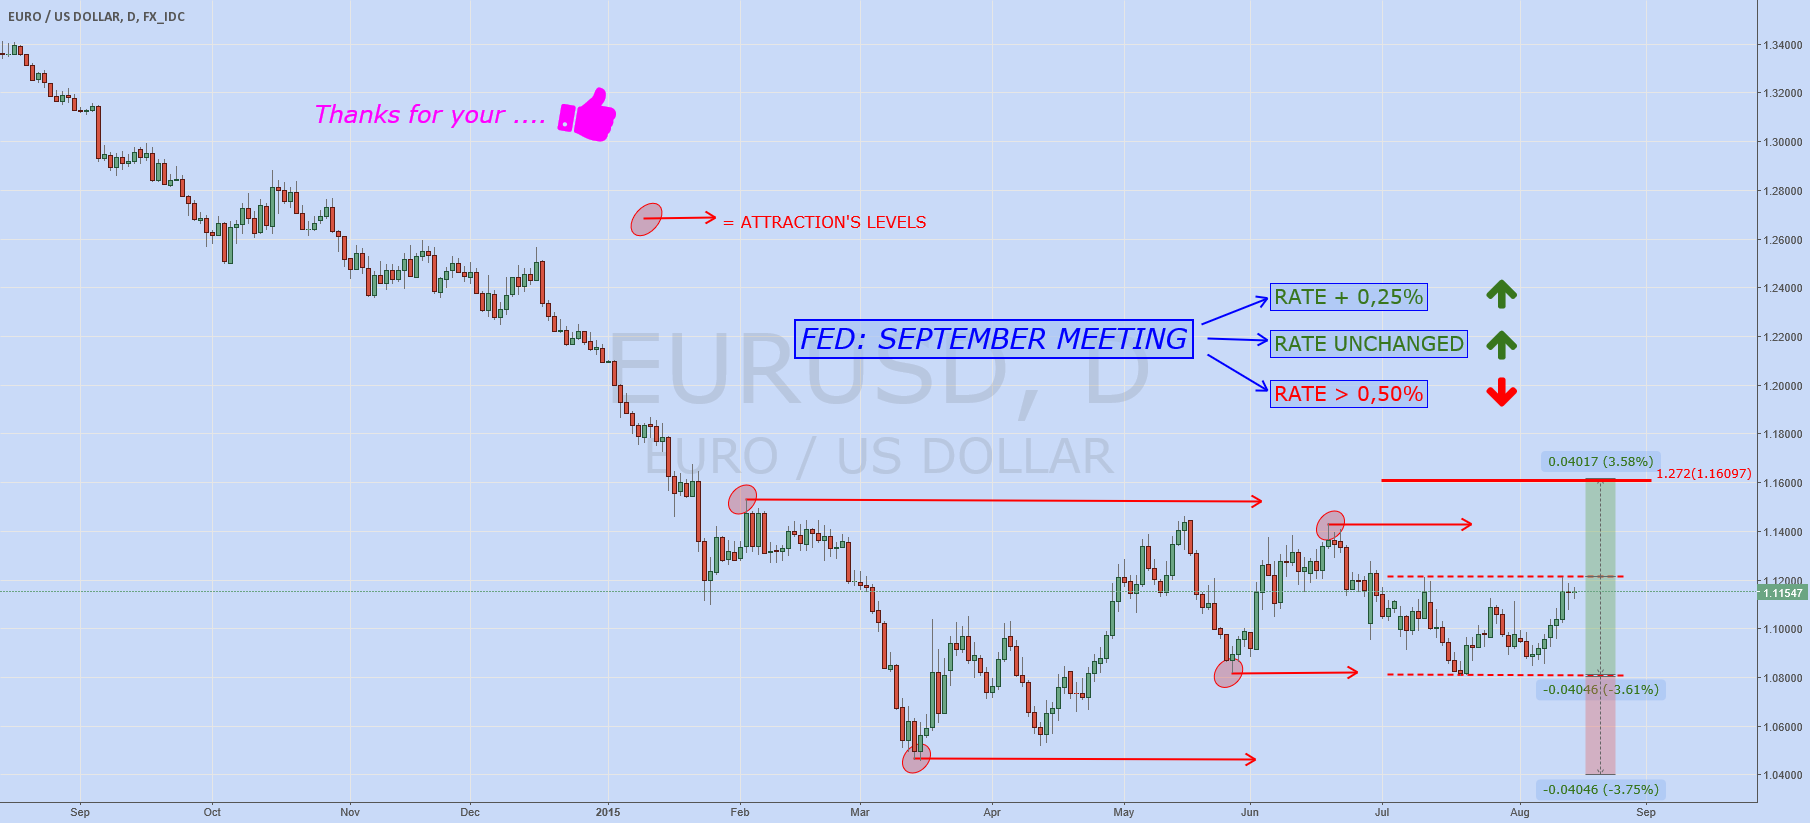 EURUSD wait FED decision....